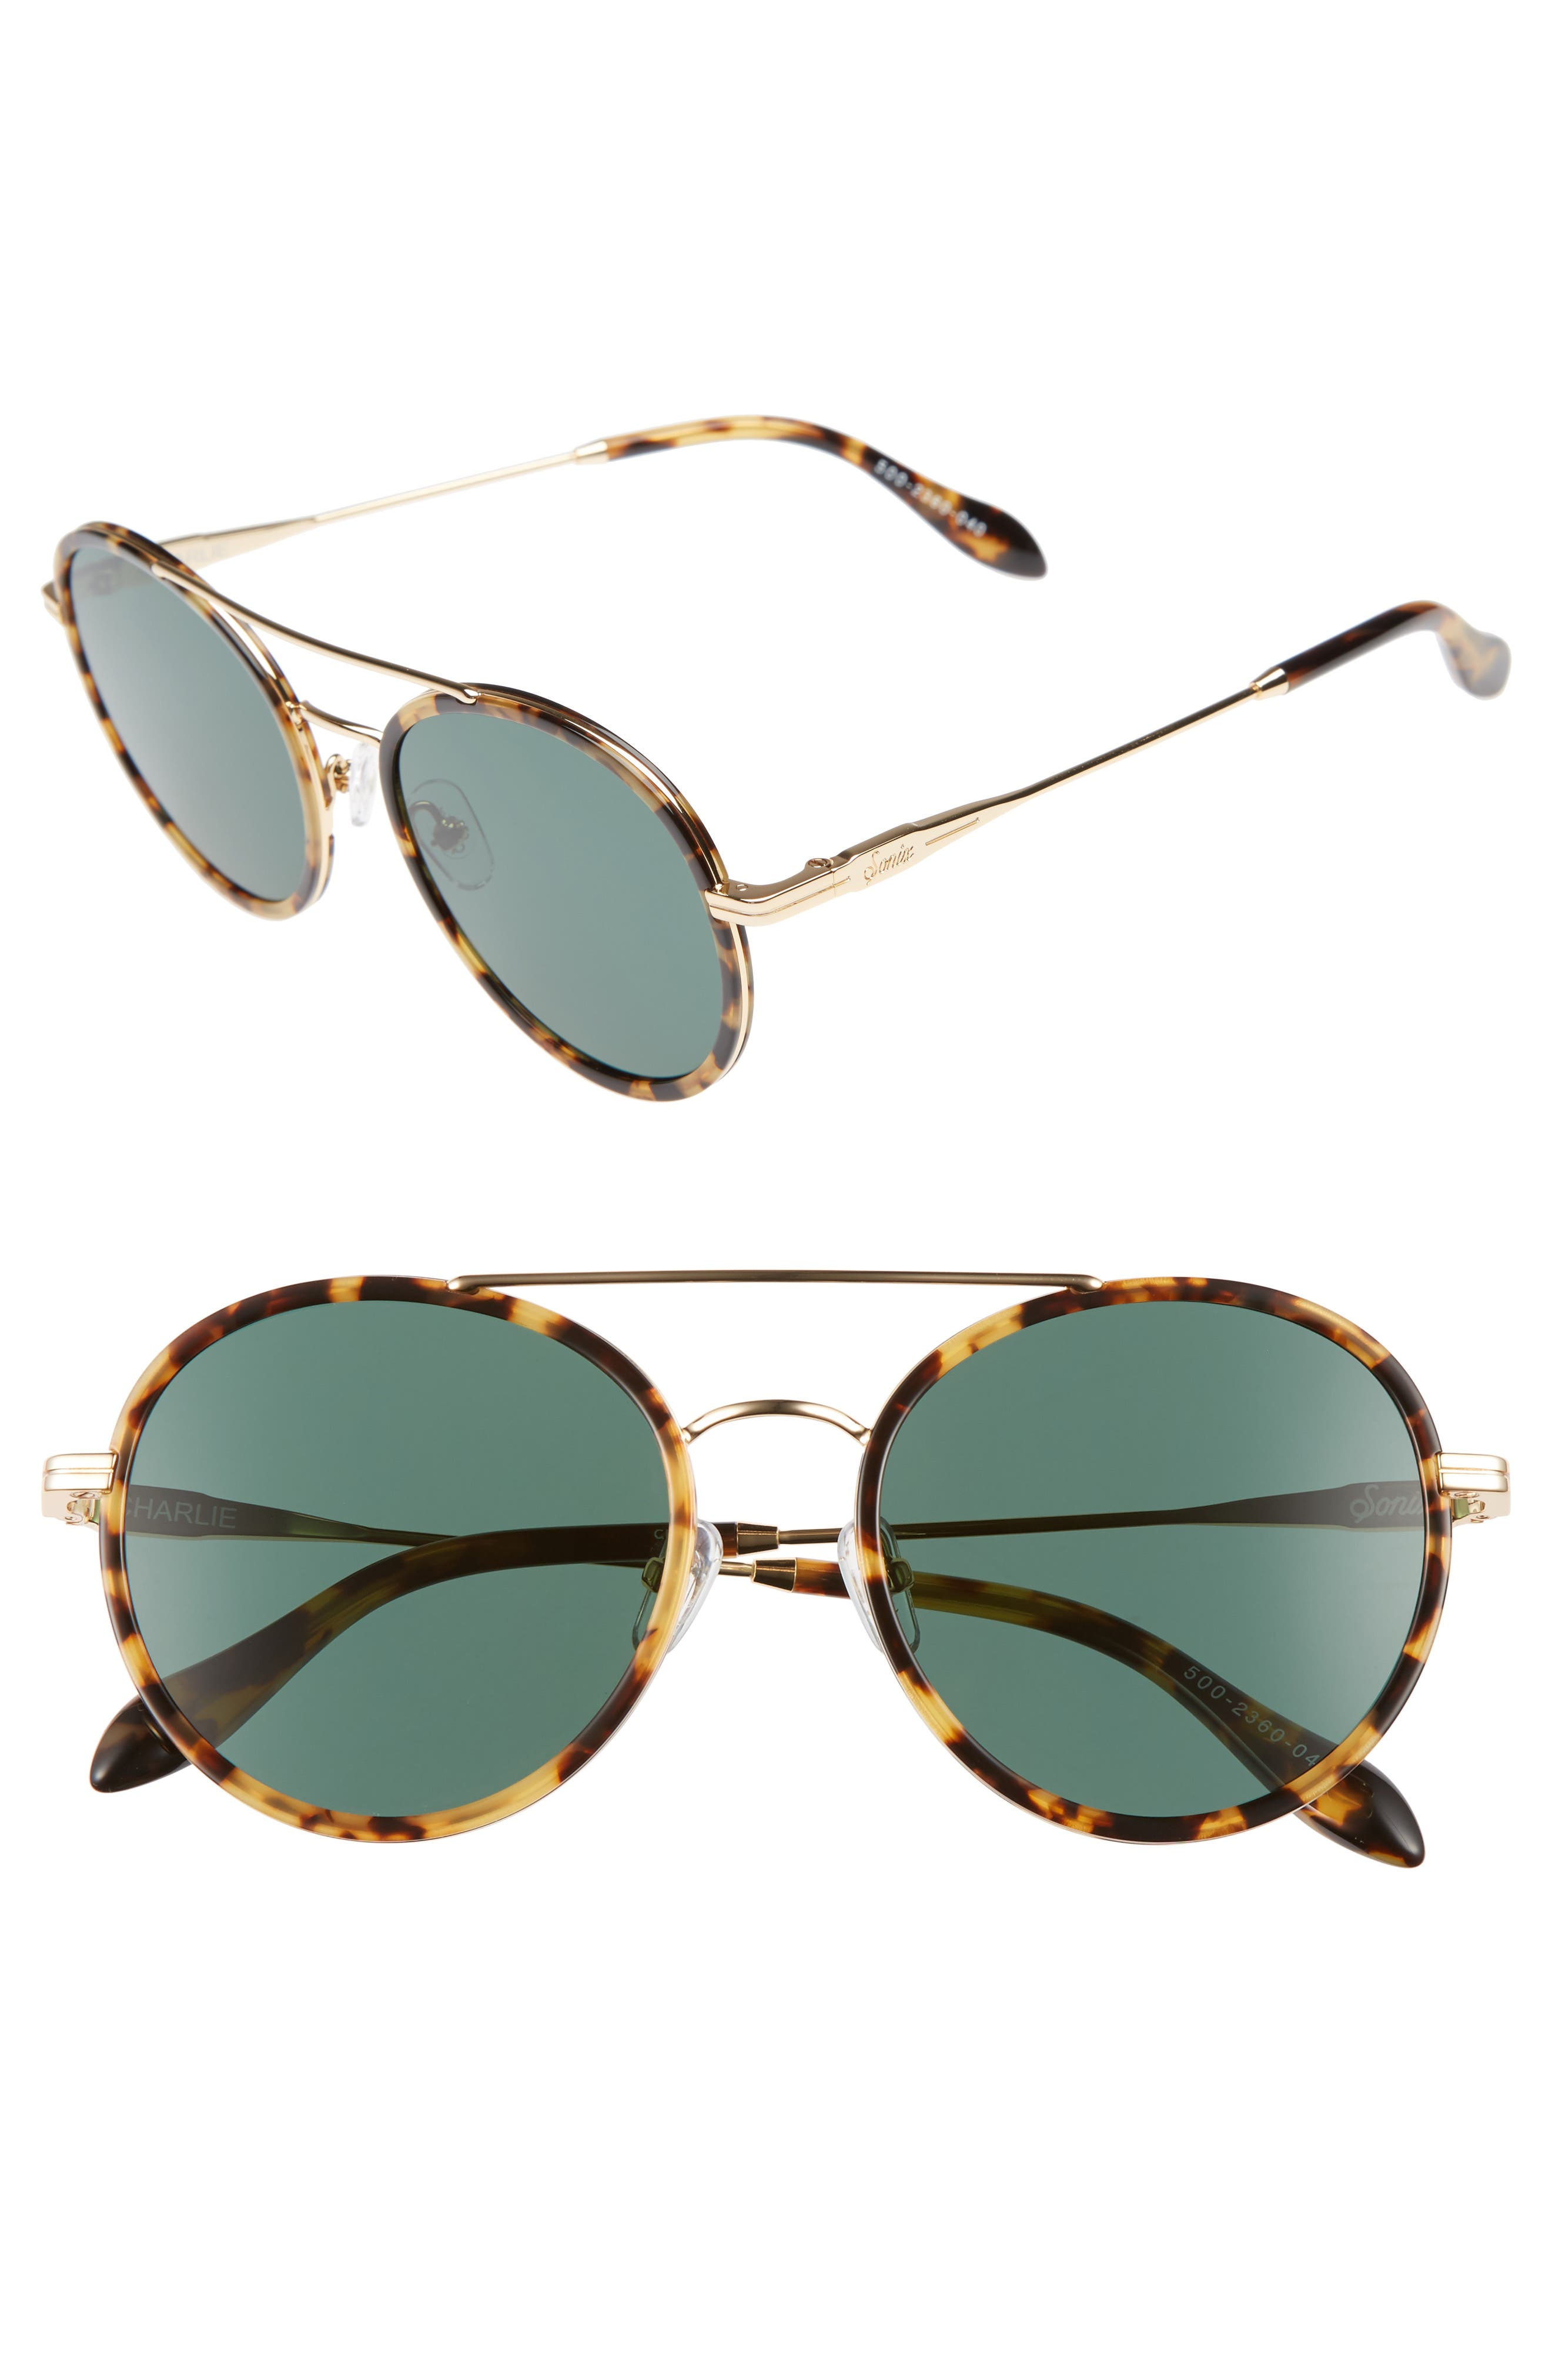 Charli 50mm Mirrored Lens Round Sunglasses,                         Main,                         color, 200